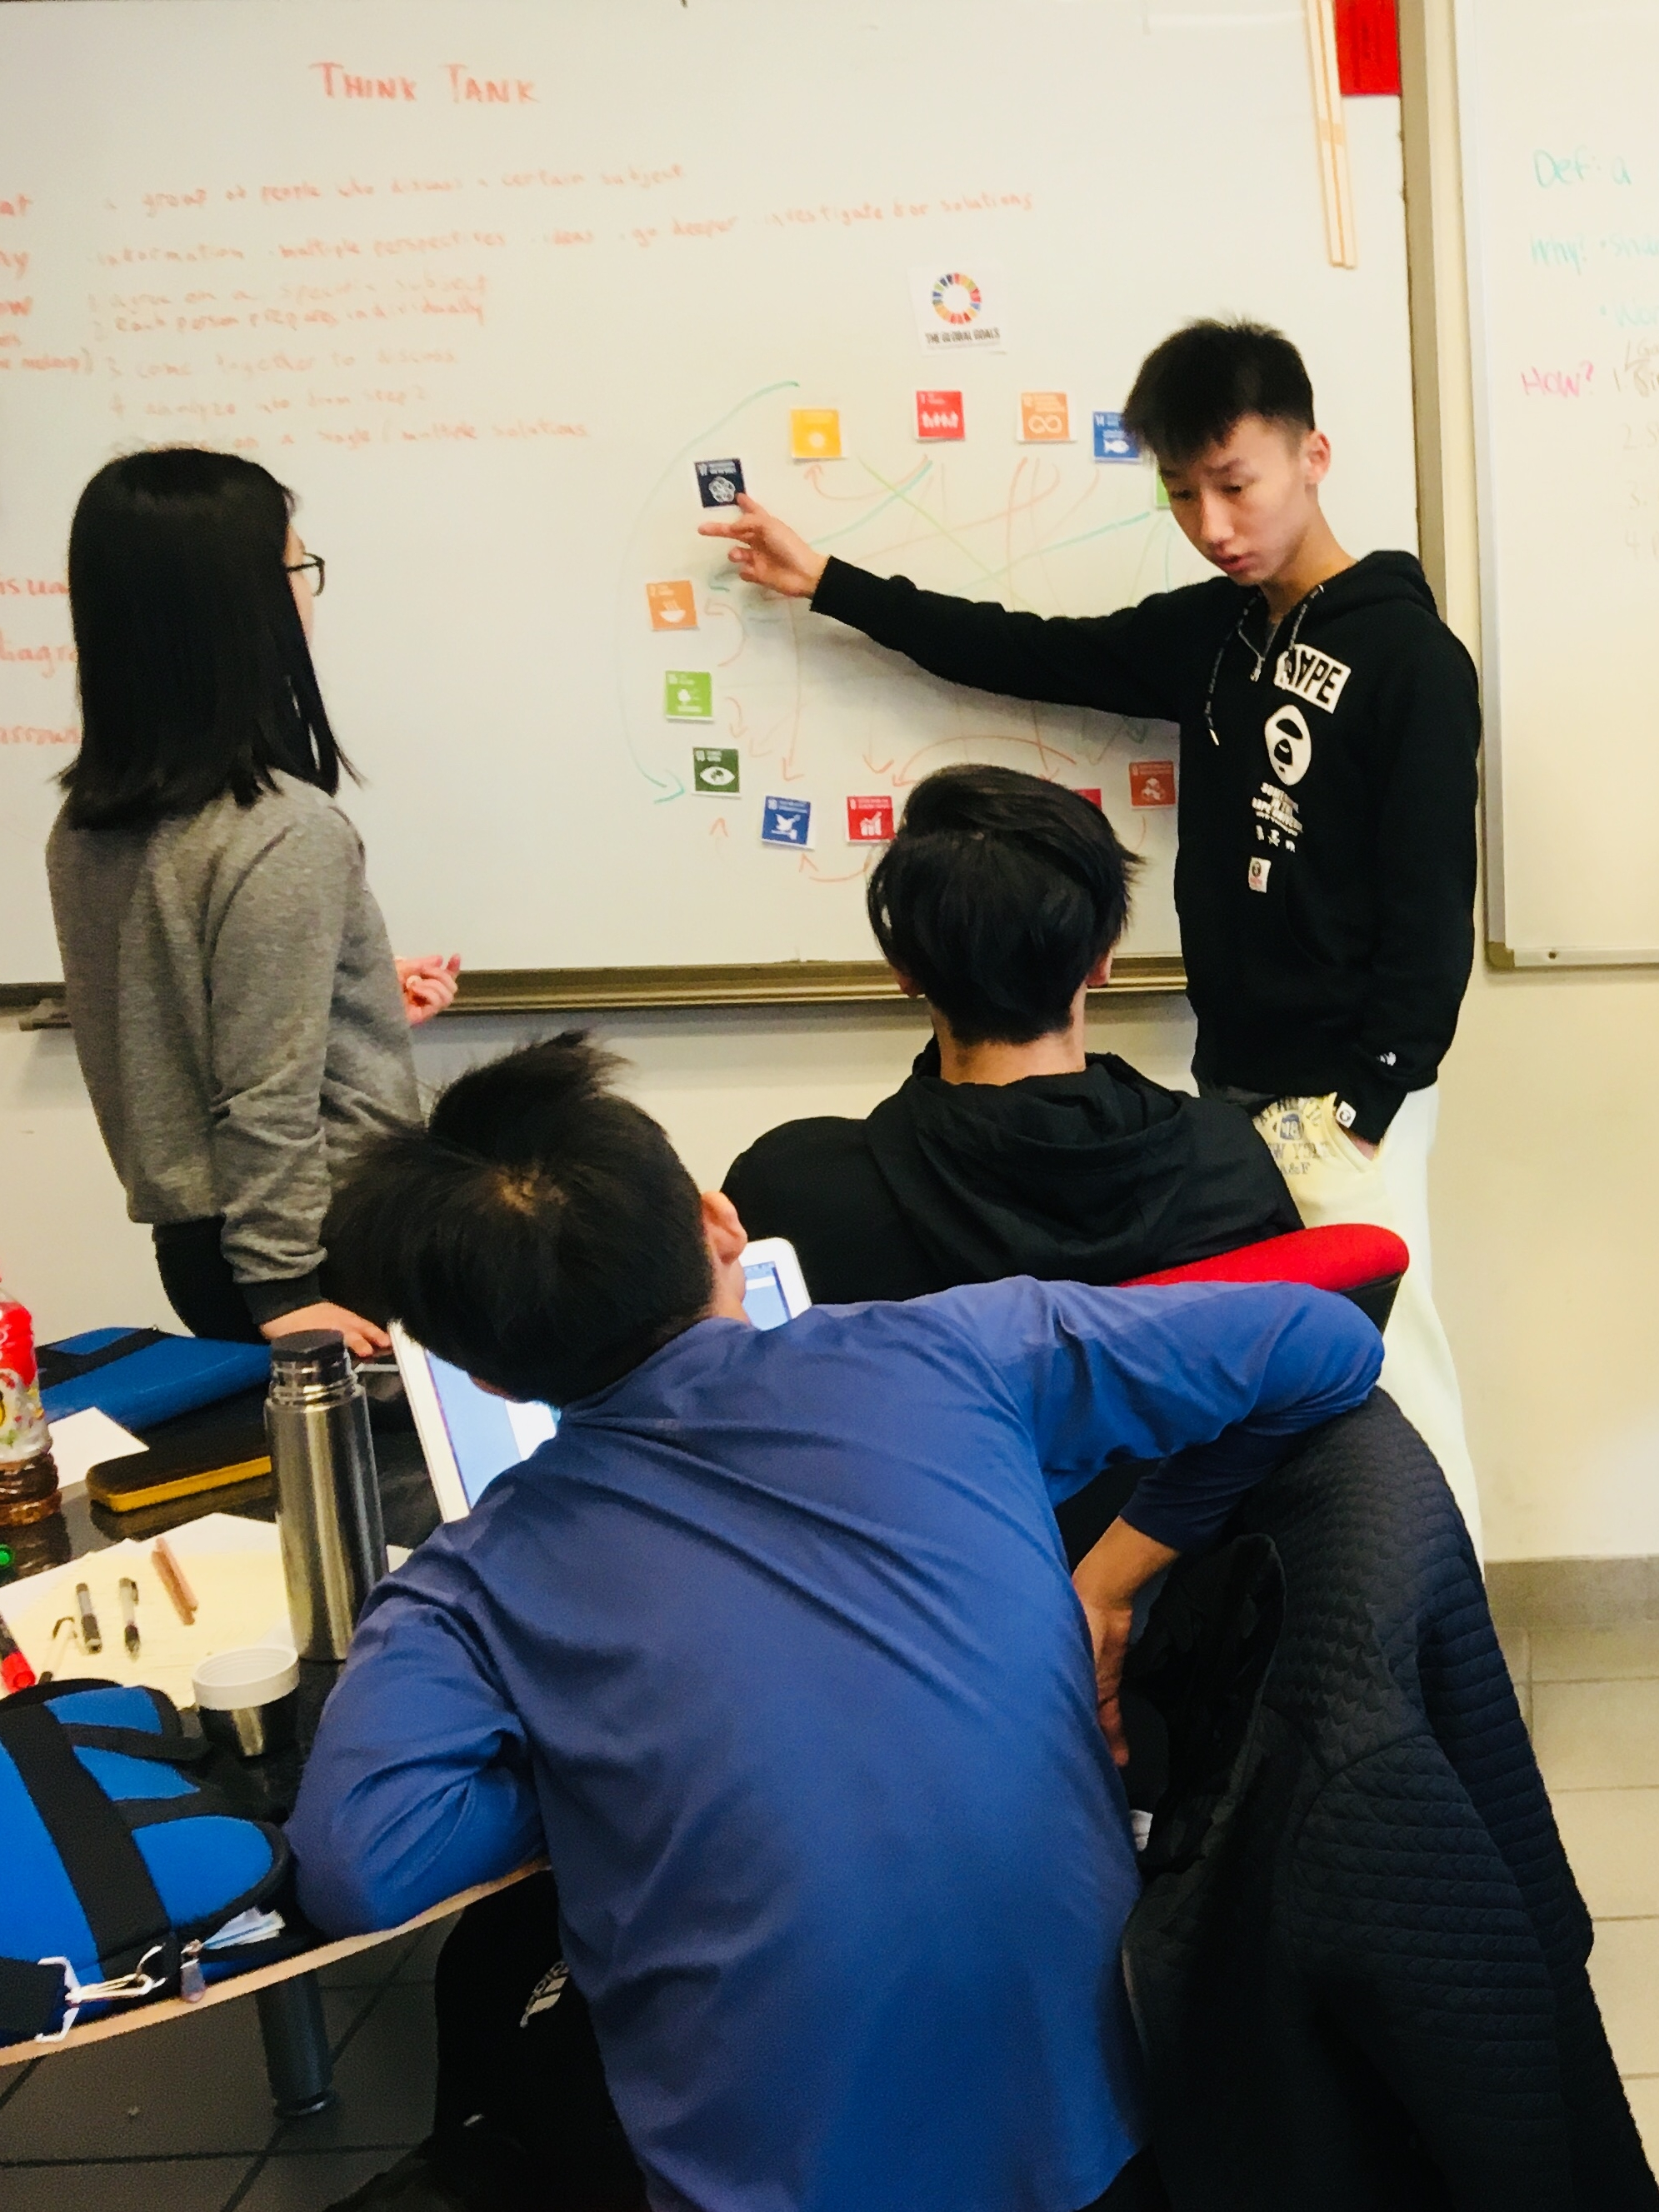 Si Ming F  Si Ming is a student specialist in leading workshops for peers on introductions to the SDGs and systems thinking in relation to the interconnectedness of goals and targets. He also has worked with the  17 Skills for 17 Goals  Program to bring leadership skills and sustainability together for younger children.